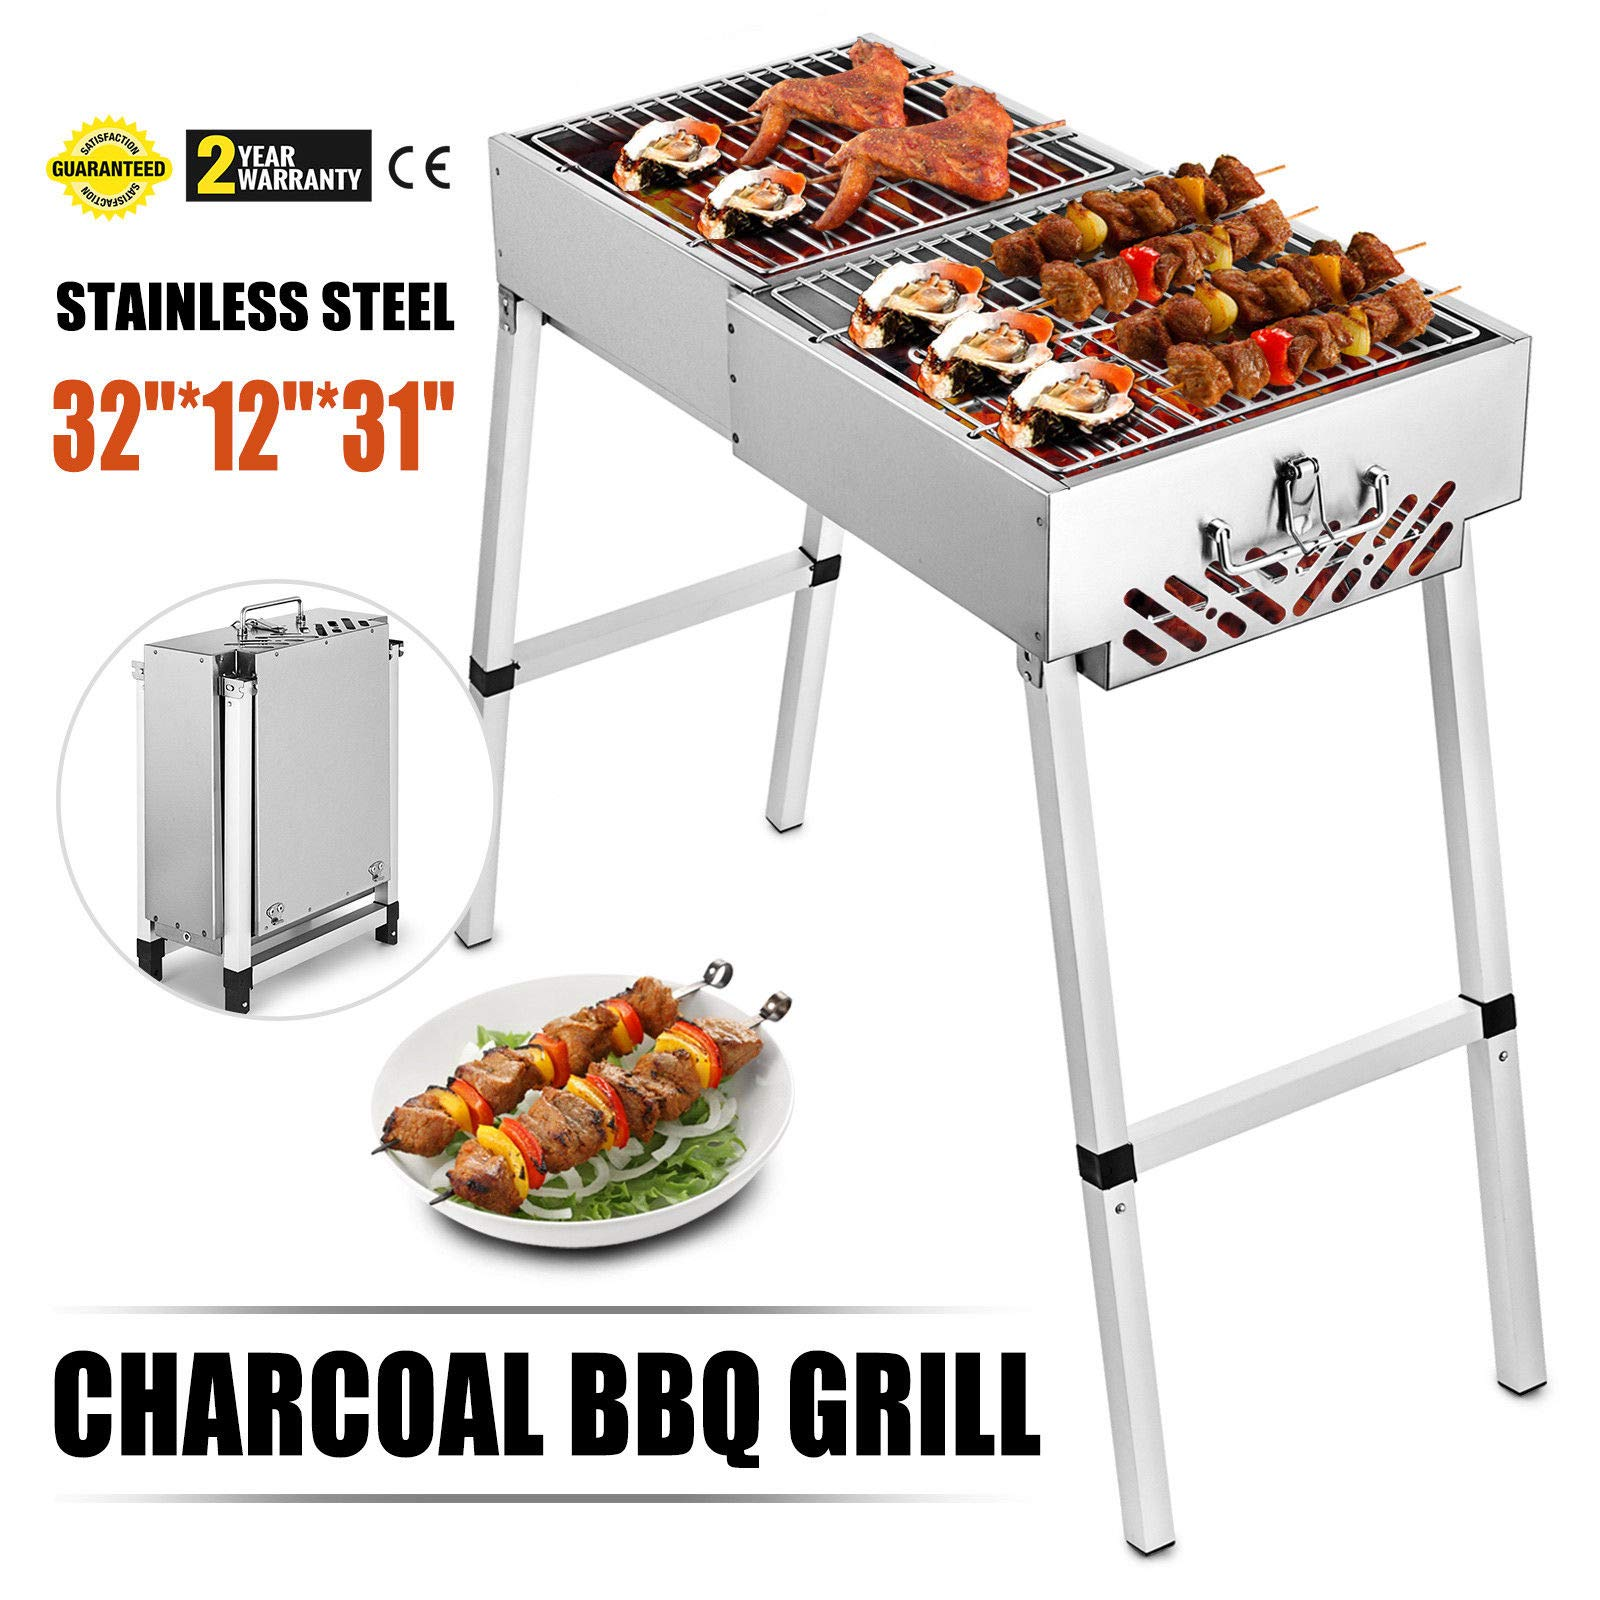 VEVOR Folded Portable Charcoal BBQ Grill Outdoor Barbecue Charcoal Stainless Steel Kebab Grill Folding Grill Portable Grill Perfect for Camping (32'' x 12'')